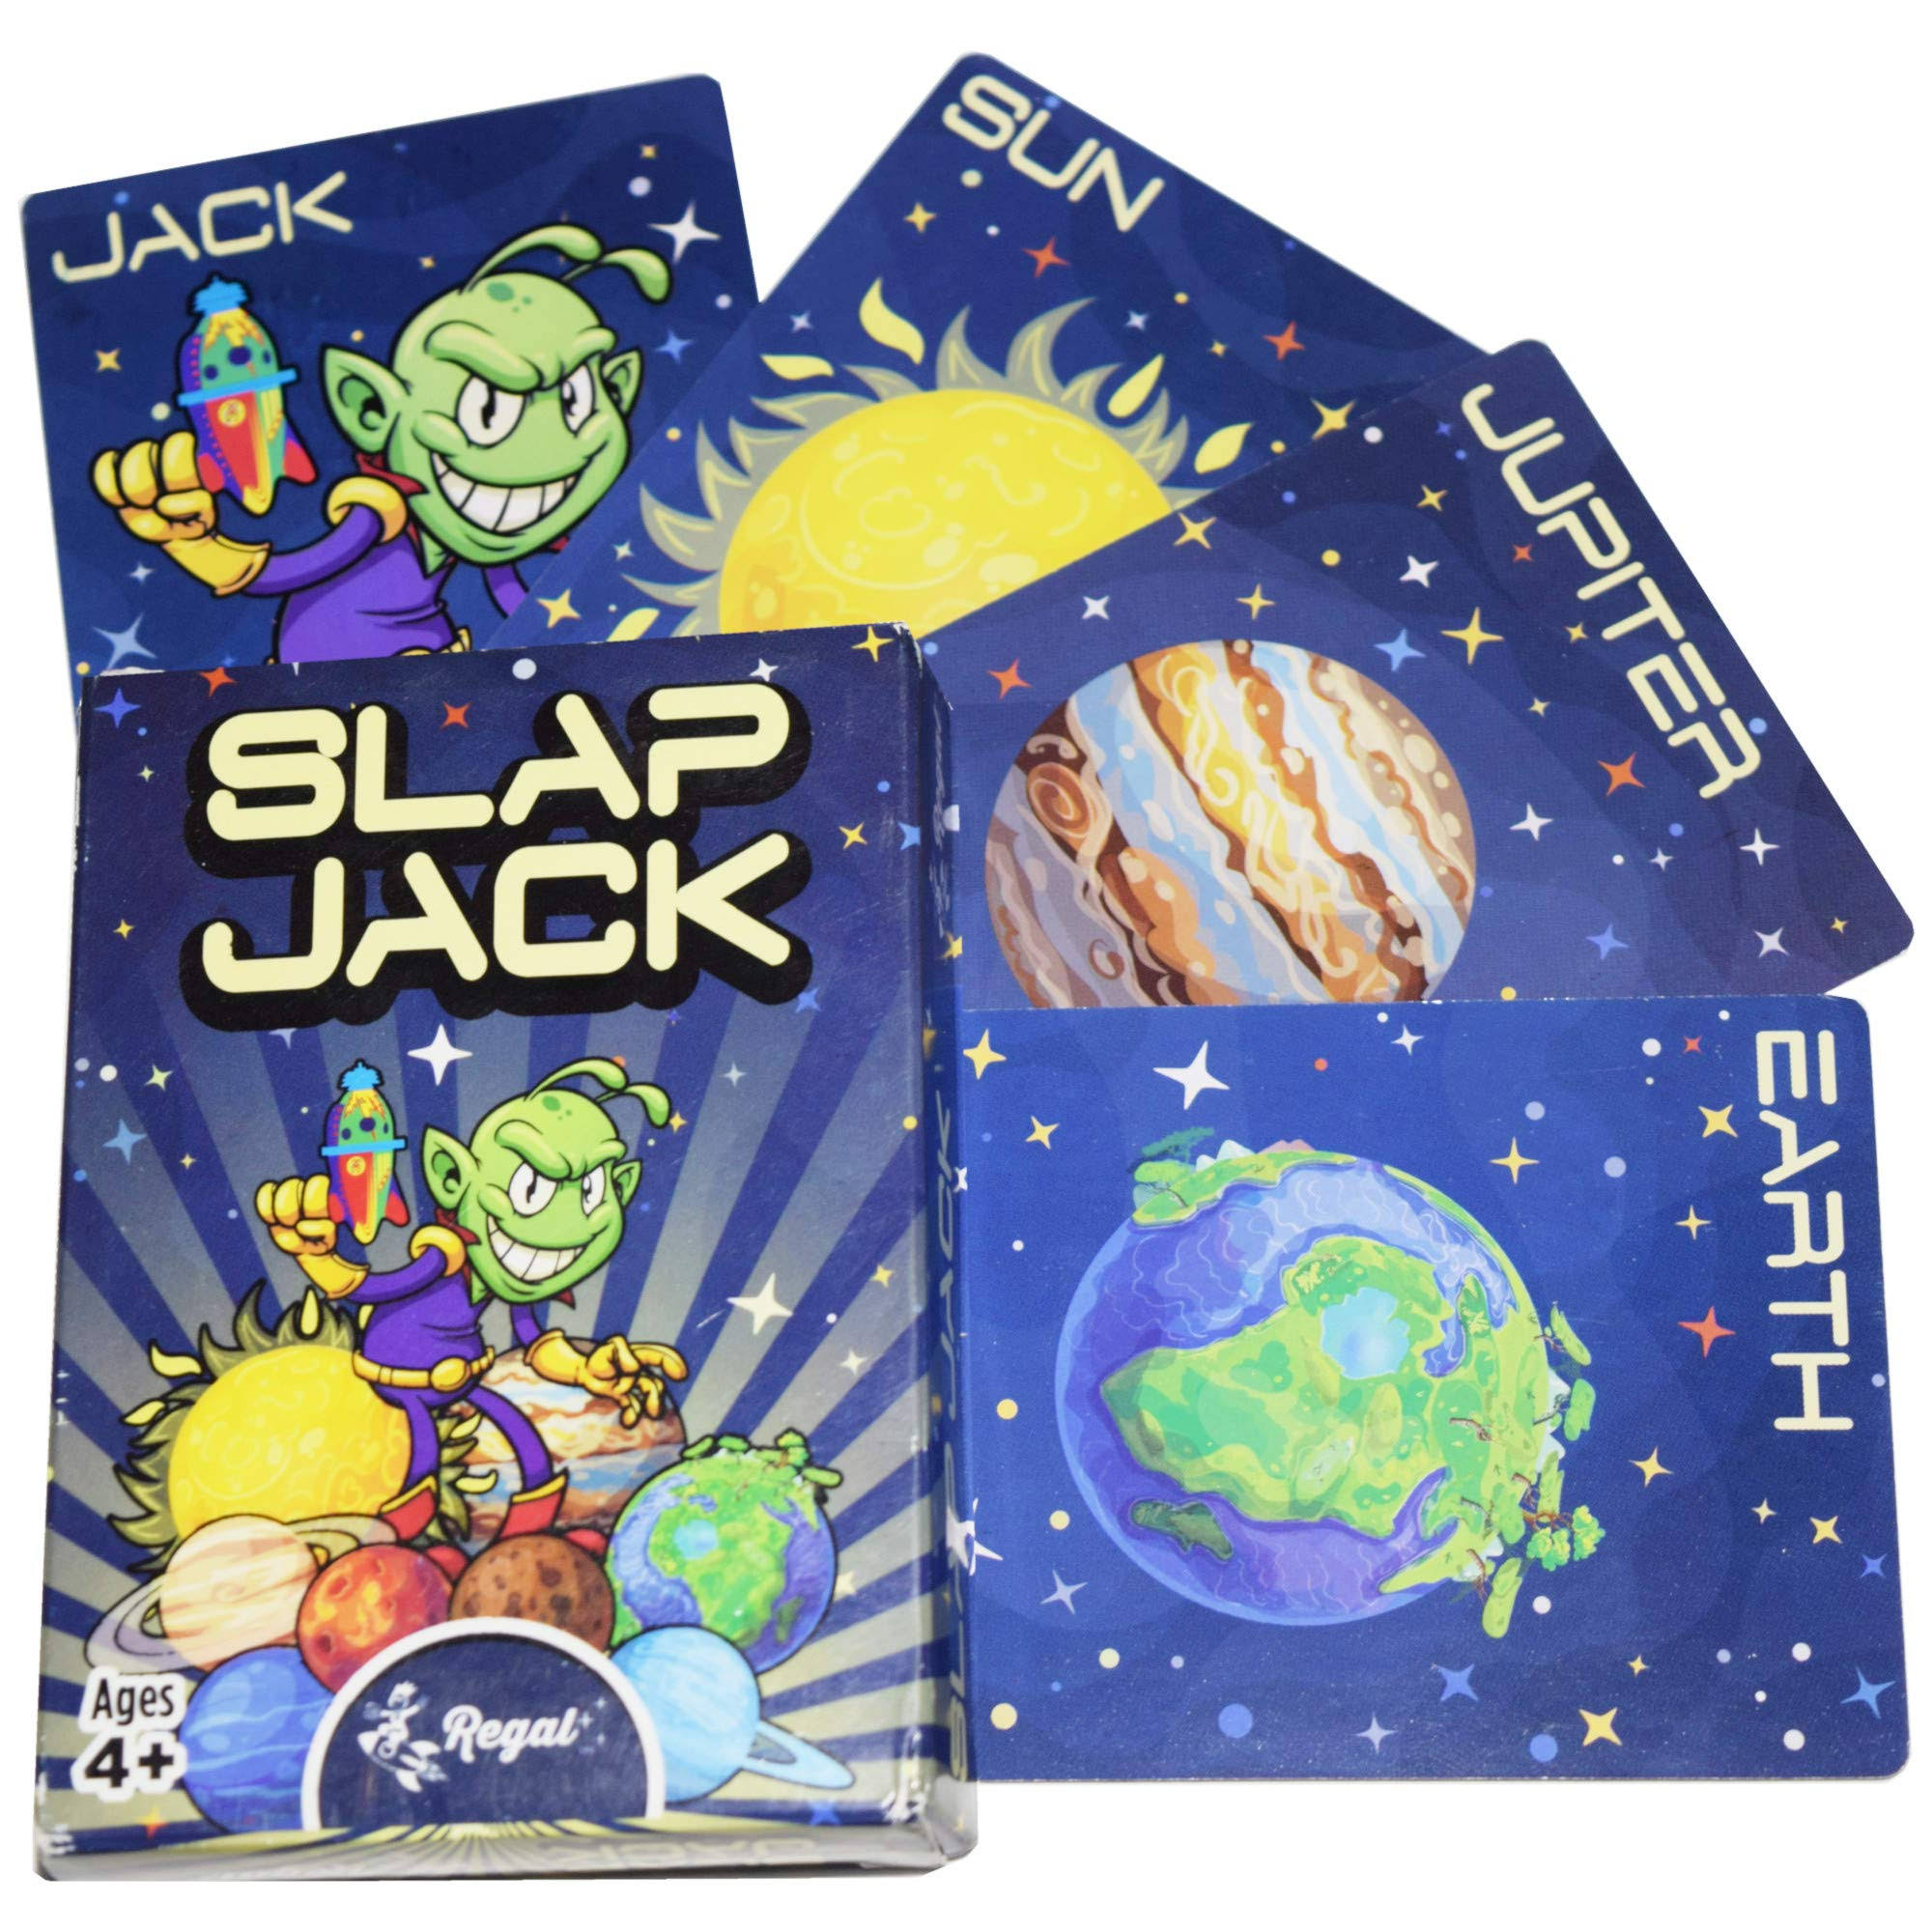 Regal Games Classic Card Games Slap Jack